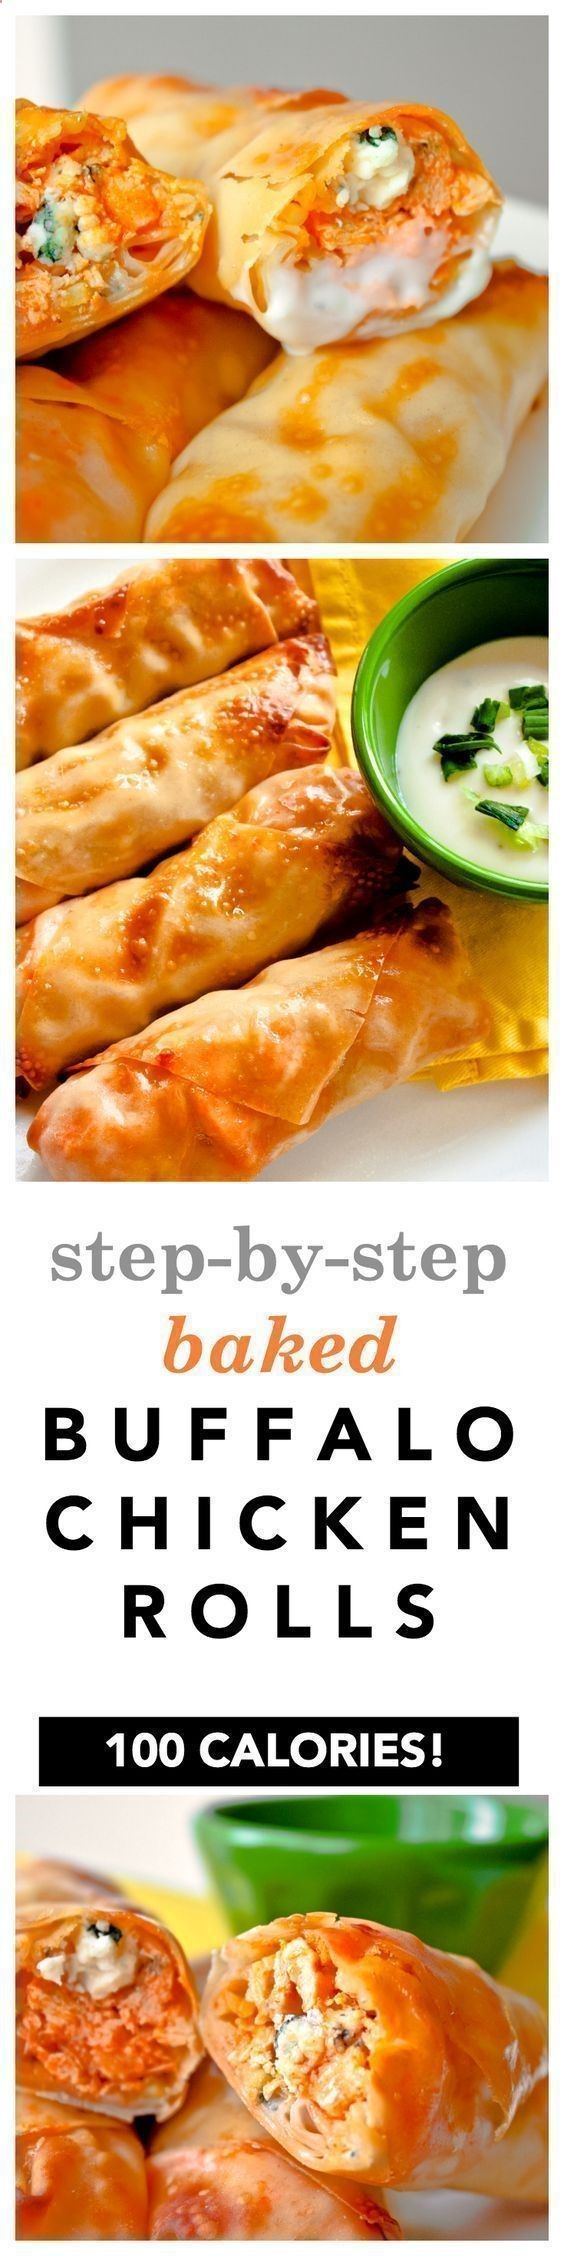 Baked Buffalo Chicken Egg Rolls Recipe! Heres the easy step by step guide showing you how to make healthy buffalo chicken rolls with egg roll wrappers, blue cheese, hot sauce, and broccoli slaw! Perfect as an appetizer but they also work as a main meal, too! 103 calories per roll